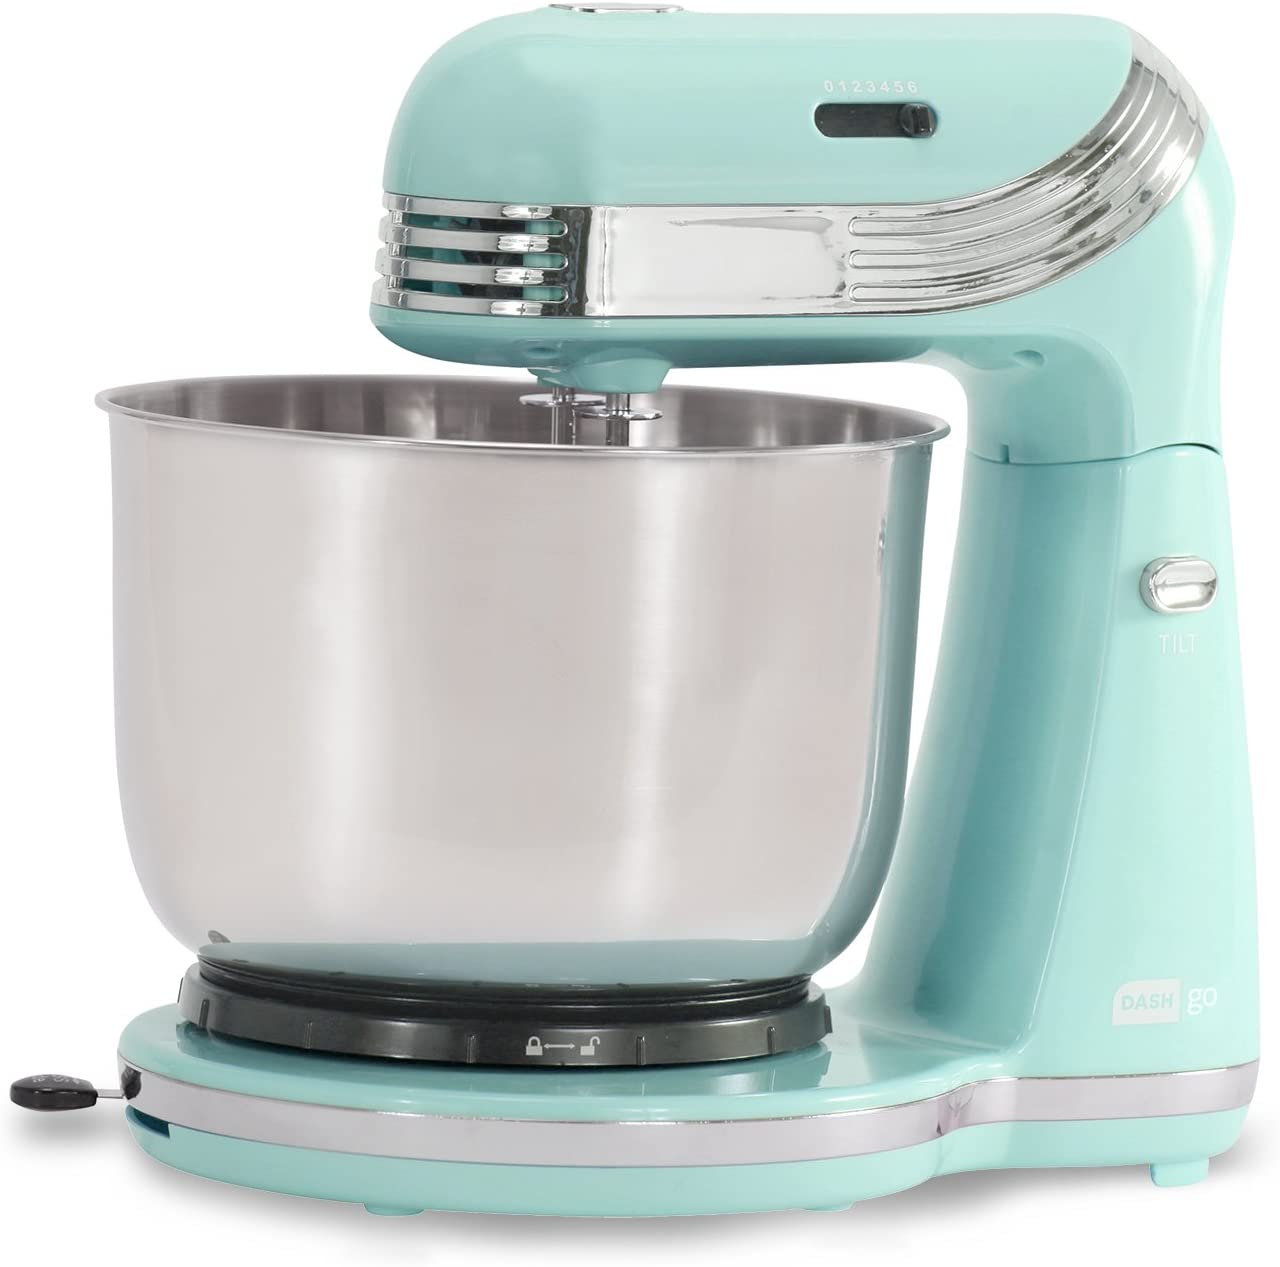 Dash Stand Mixer 6 Speed Stand Mixer with 3 qt Stainless Steel Mixing Bowl